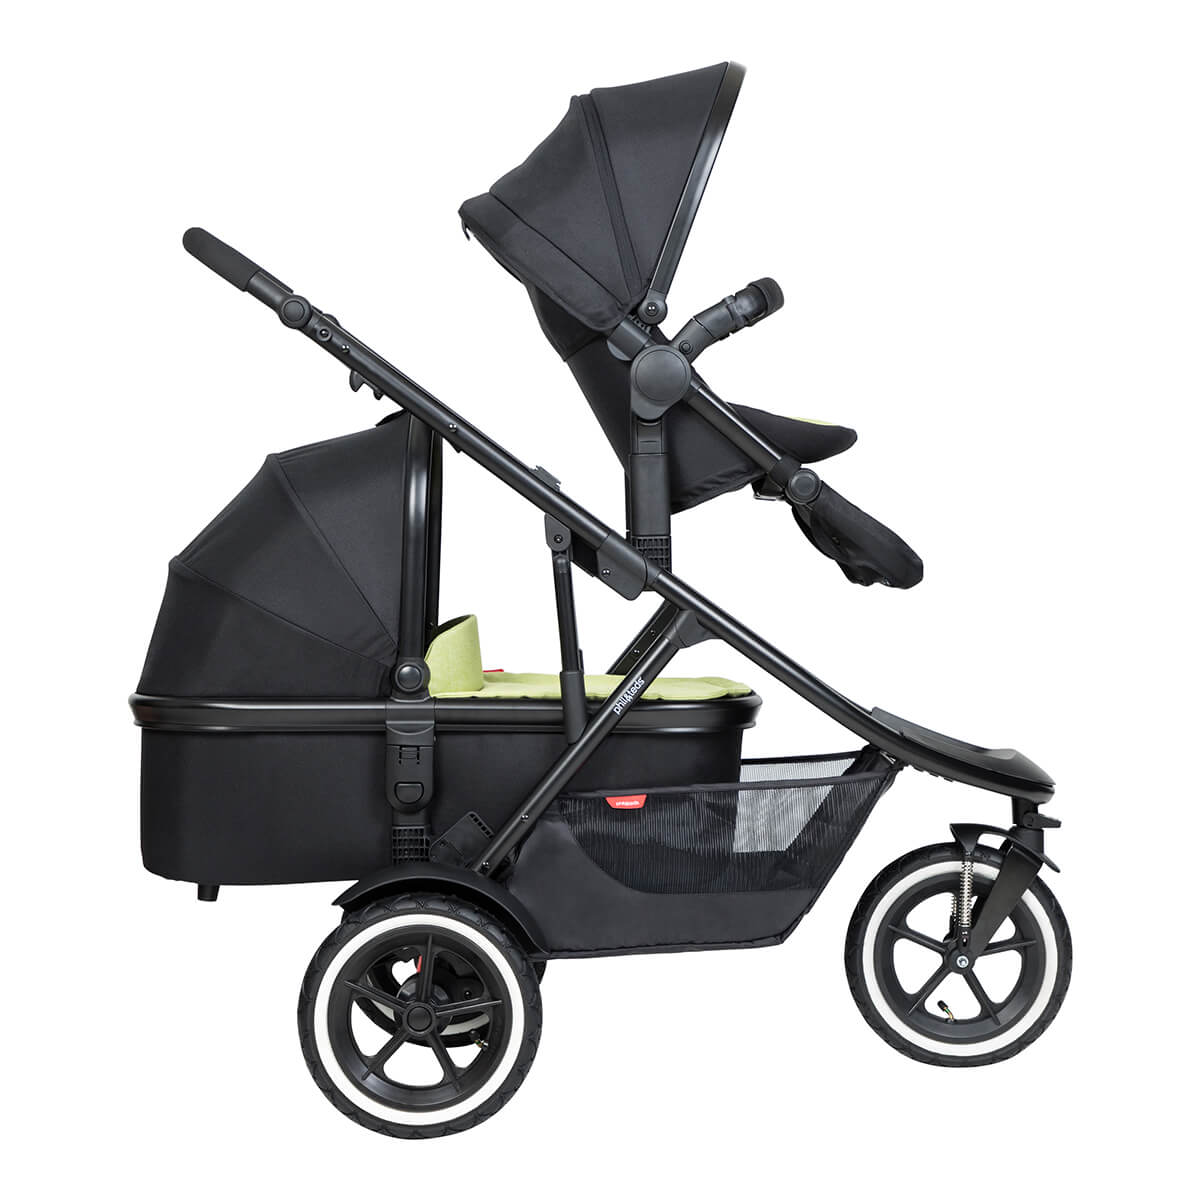 https://cdn.accentuate.io/4509528096856/19272668282968/philteds-sport-buggy-with-double-kit-extended-clip-and-snug-carrycot-side-view-v1626484416623.jpg?1200x1200